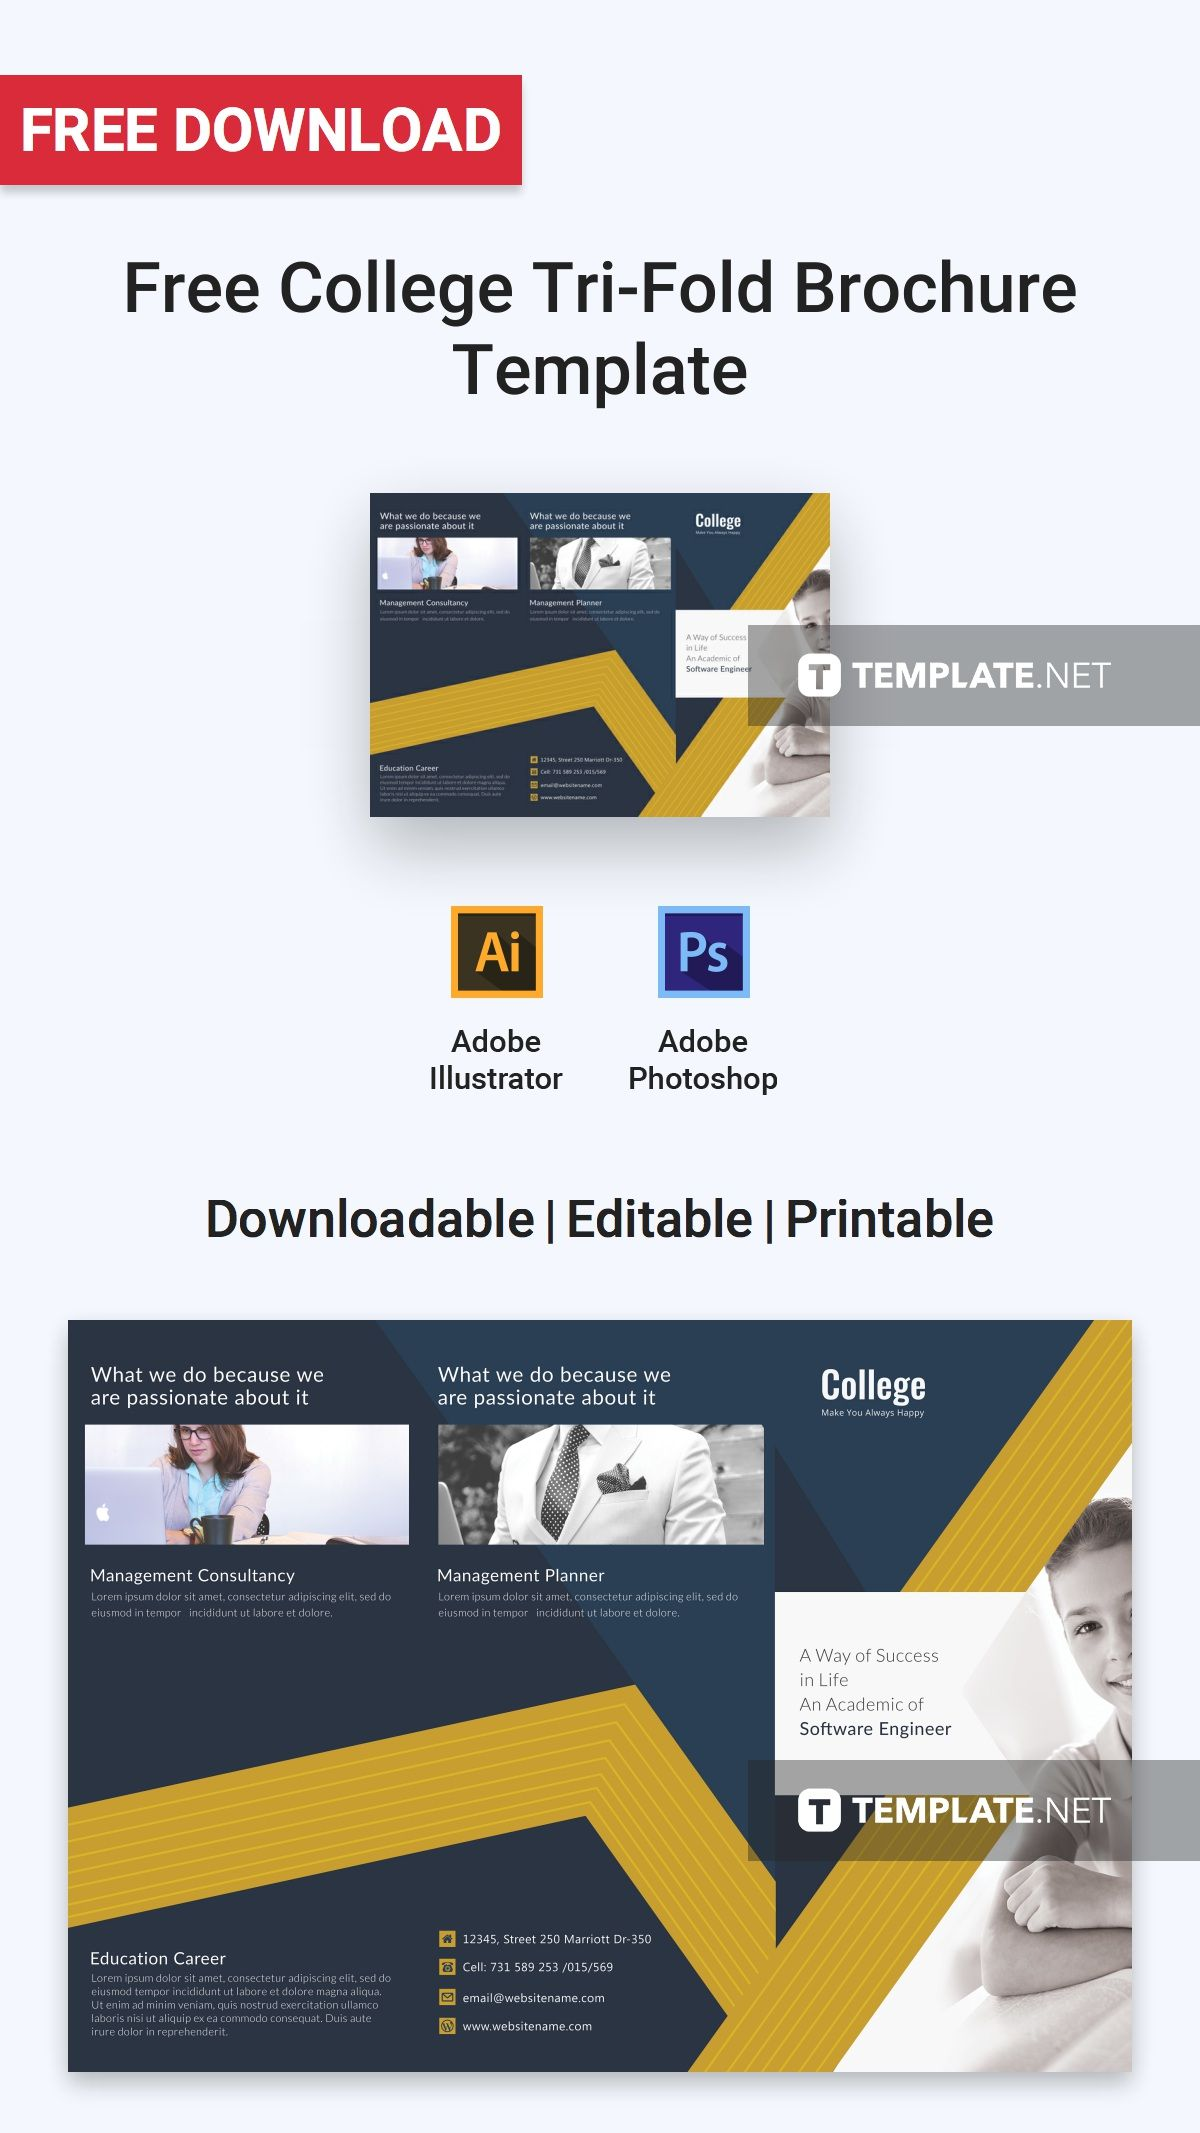 Free College TriFold Brochure Brochure, Trifold